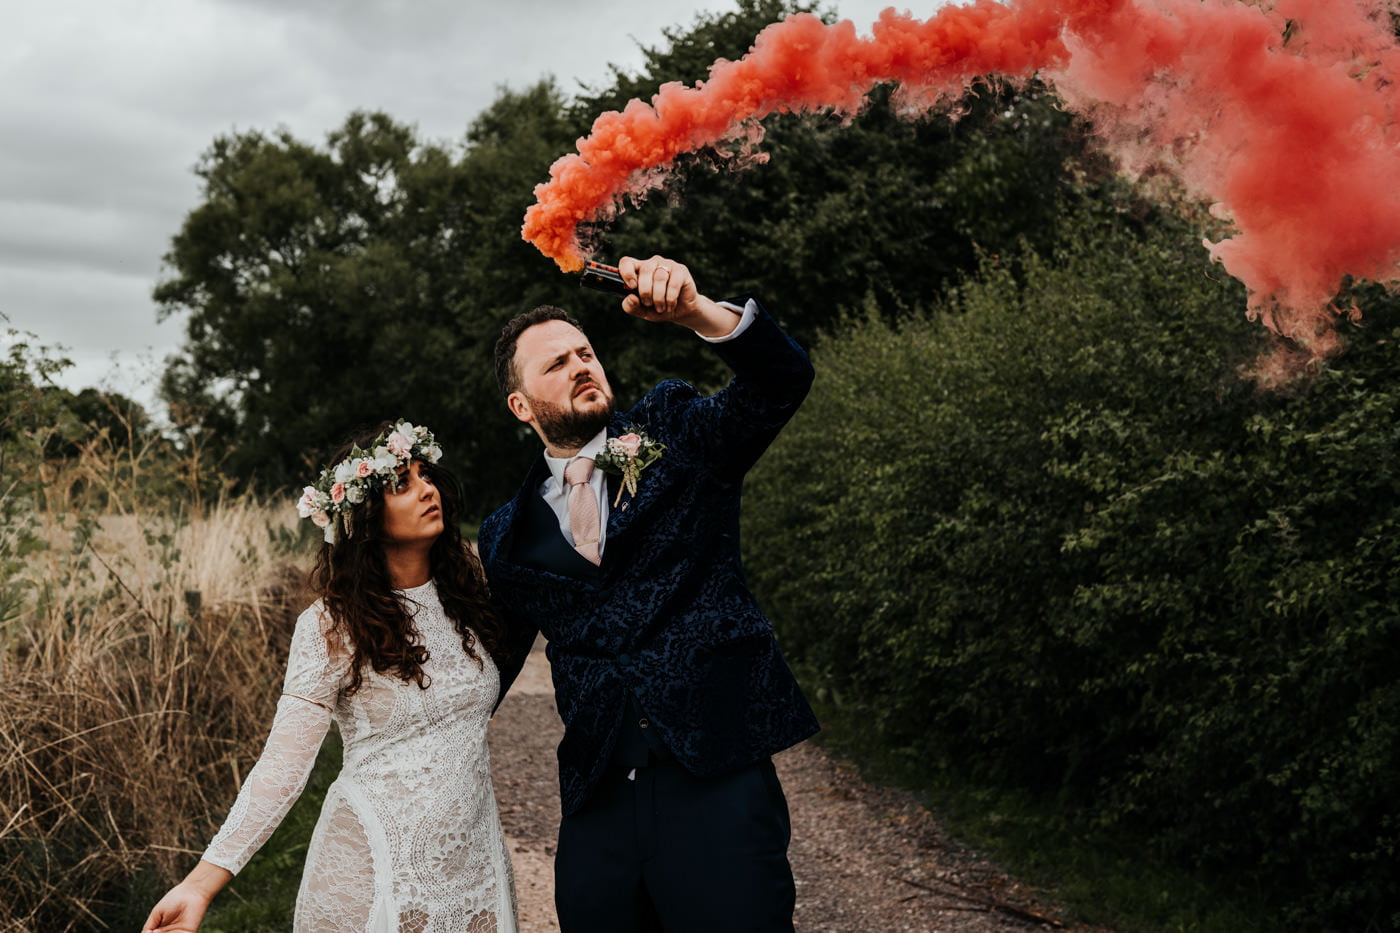 old summer dairy wedding smoke grenades